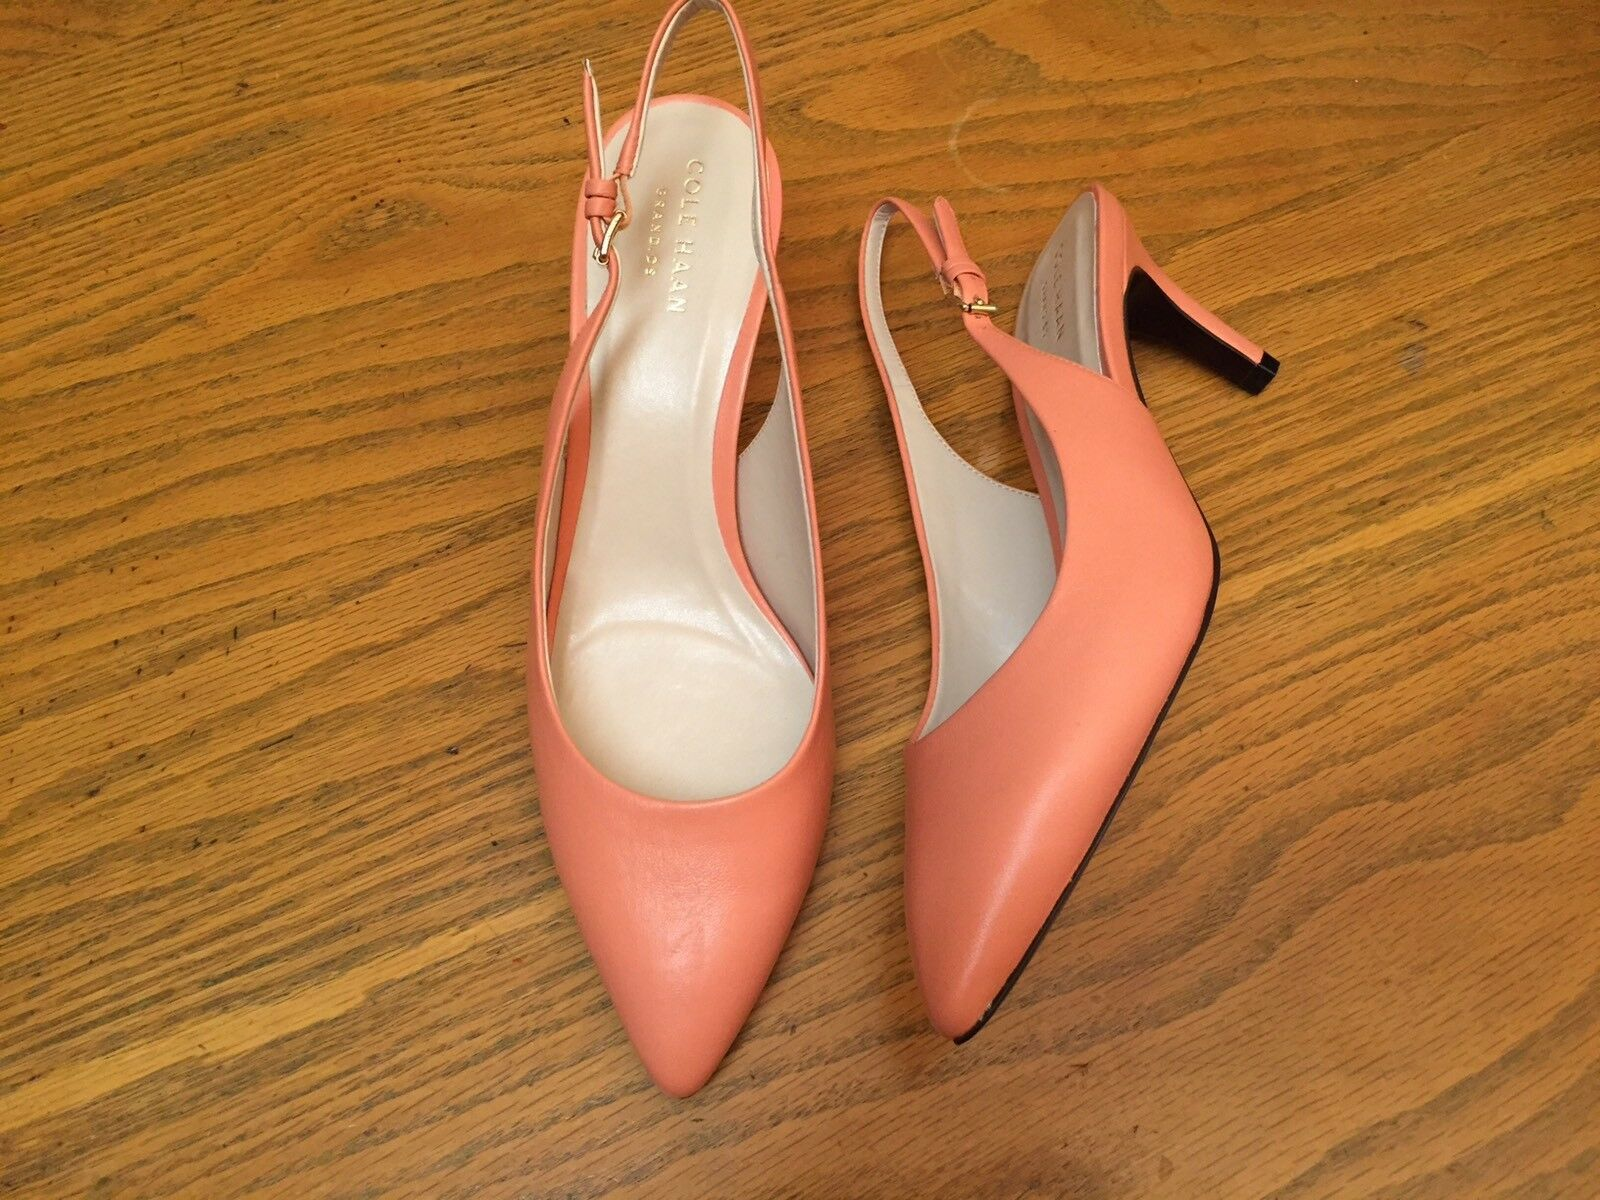 COLE HAAN GRAND NEW OS SLING BACK HEEL SHOES NEW GRAND SIZE 8 890331